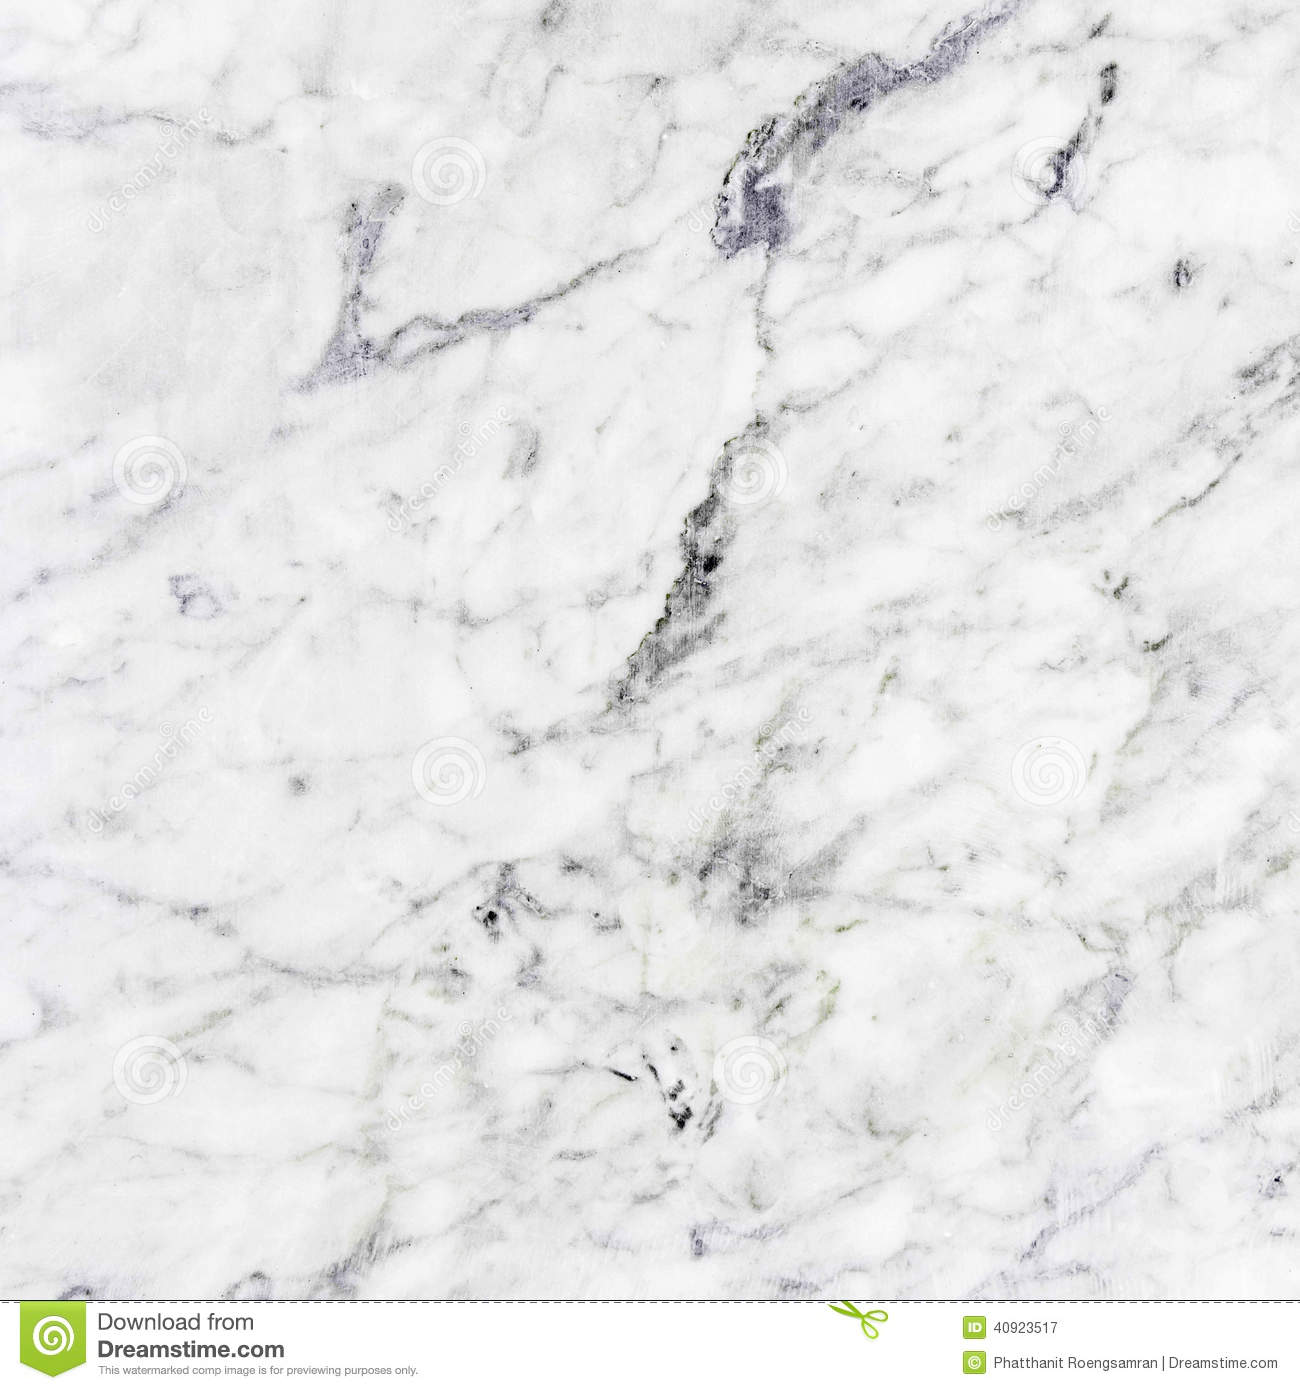 White And Black Marble white marble texture stock photos - image: 18338693